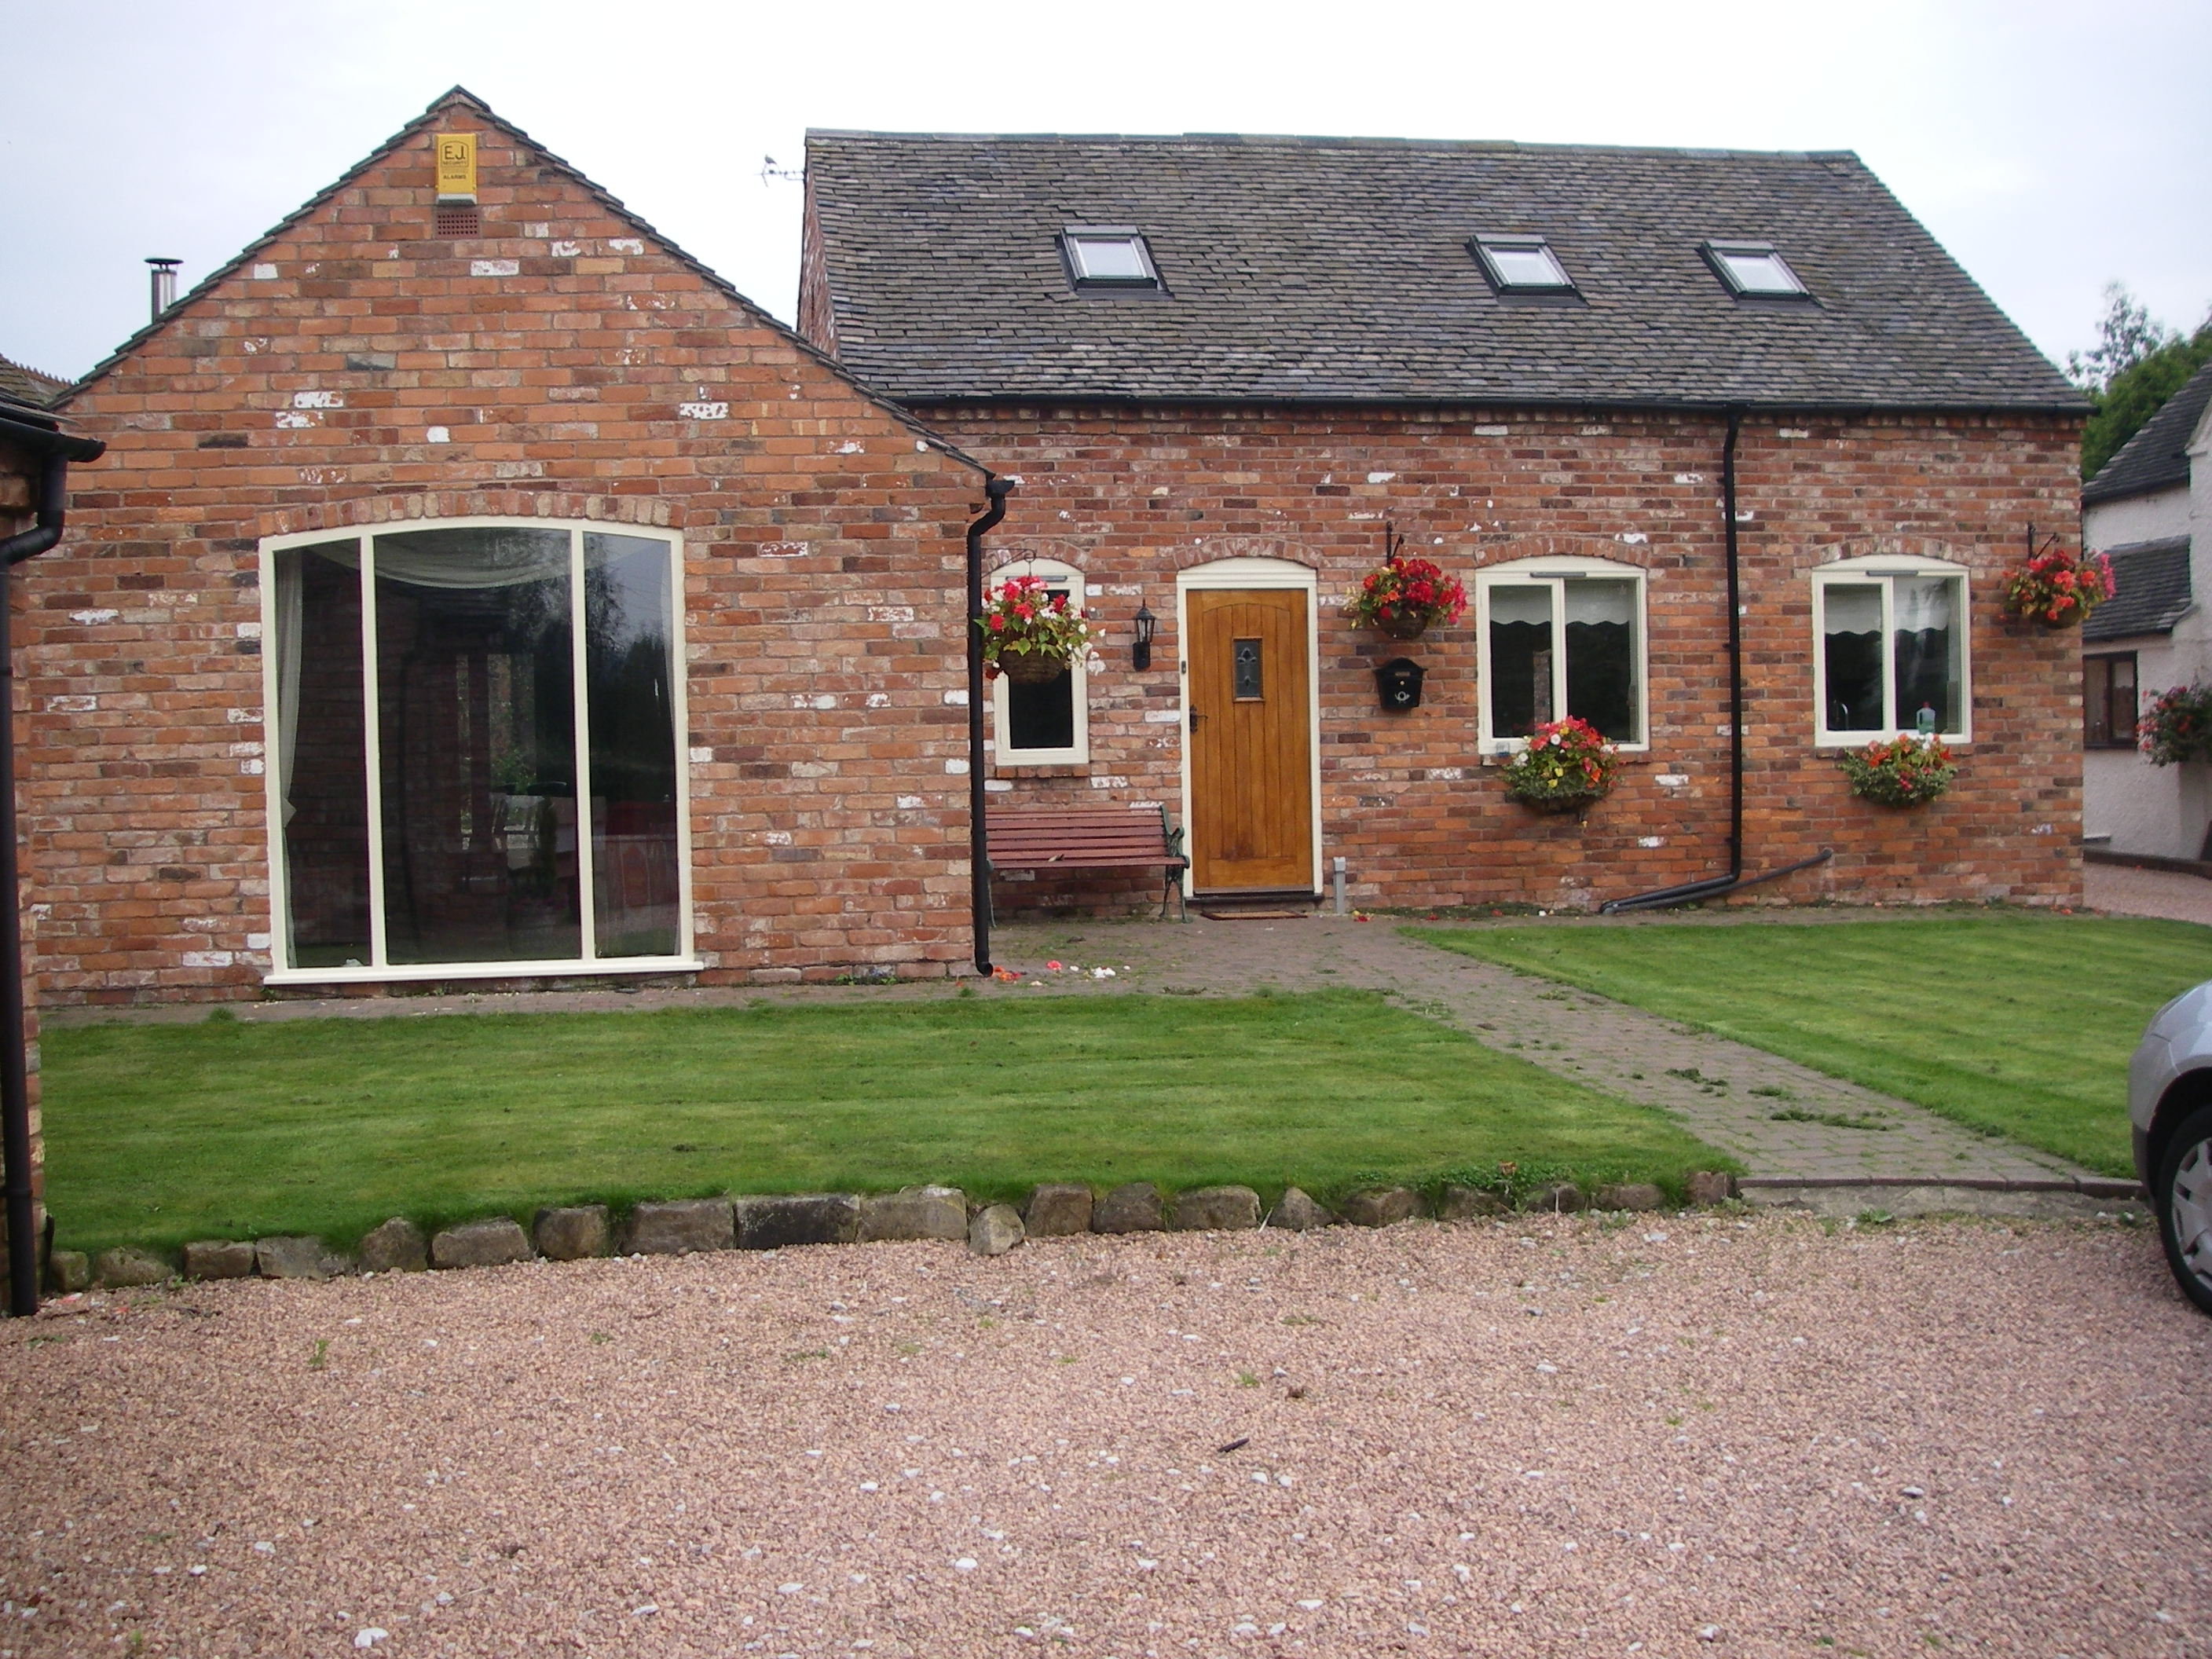 3 Bedroom Part Furnished Detached To Rent On Church Lane,Barrow On